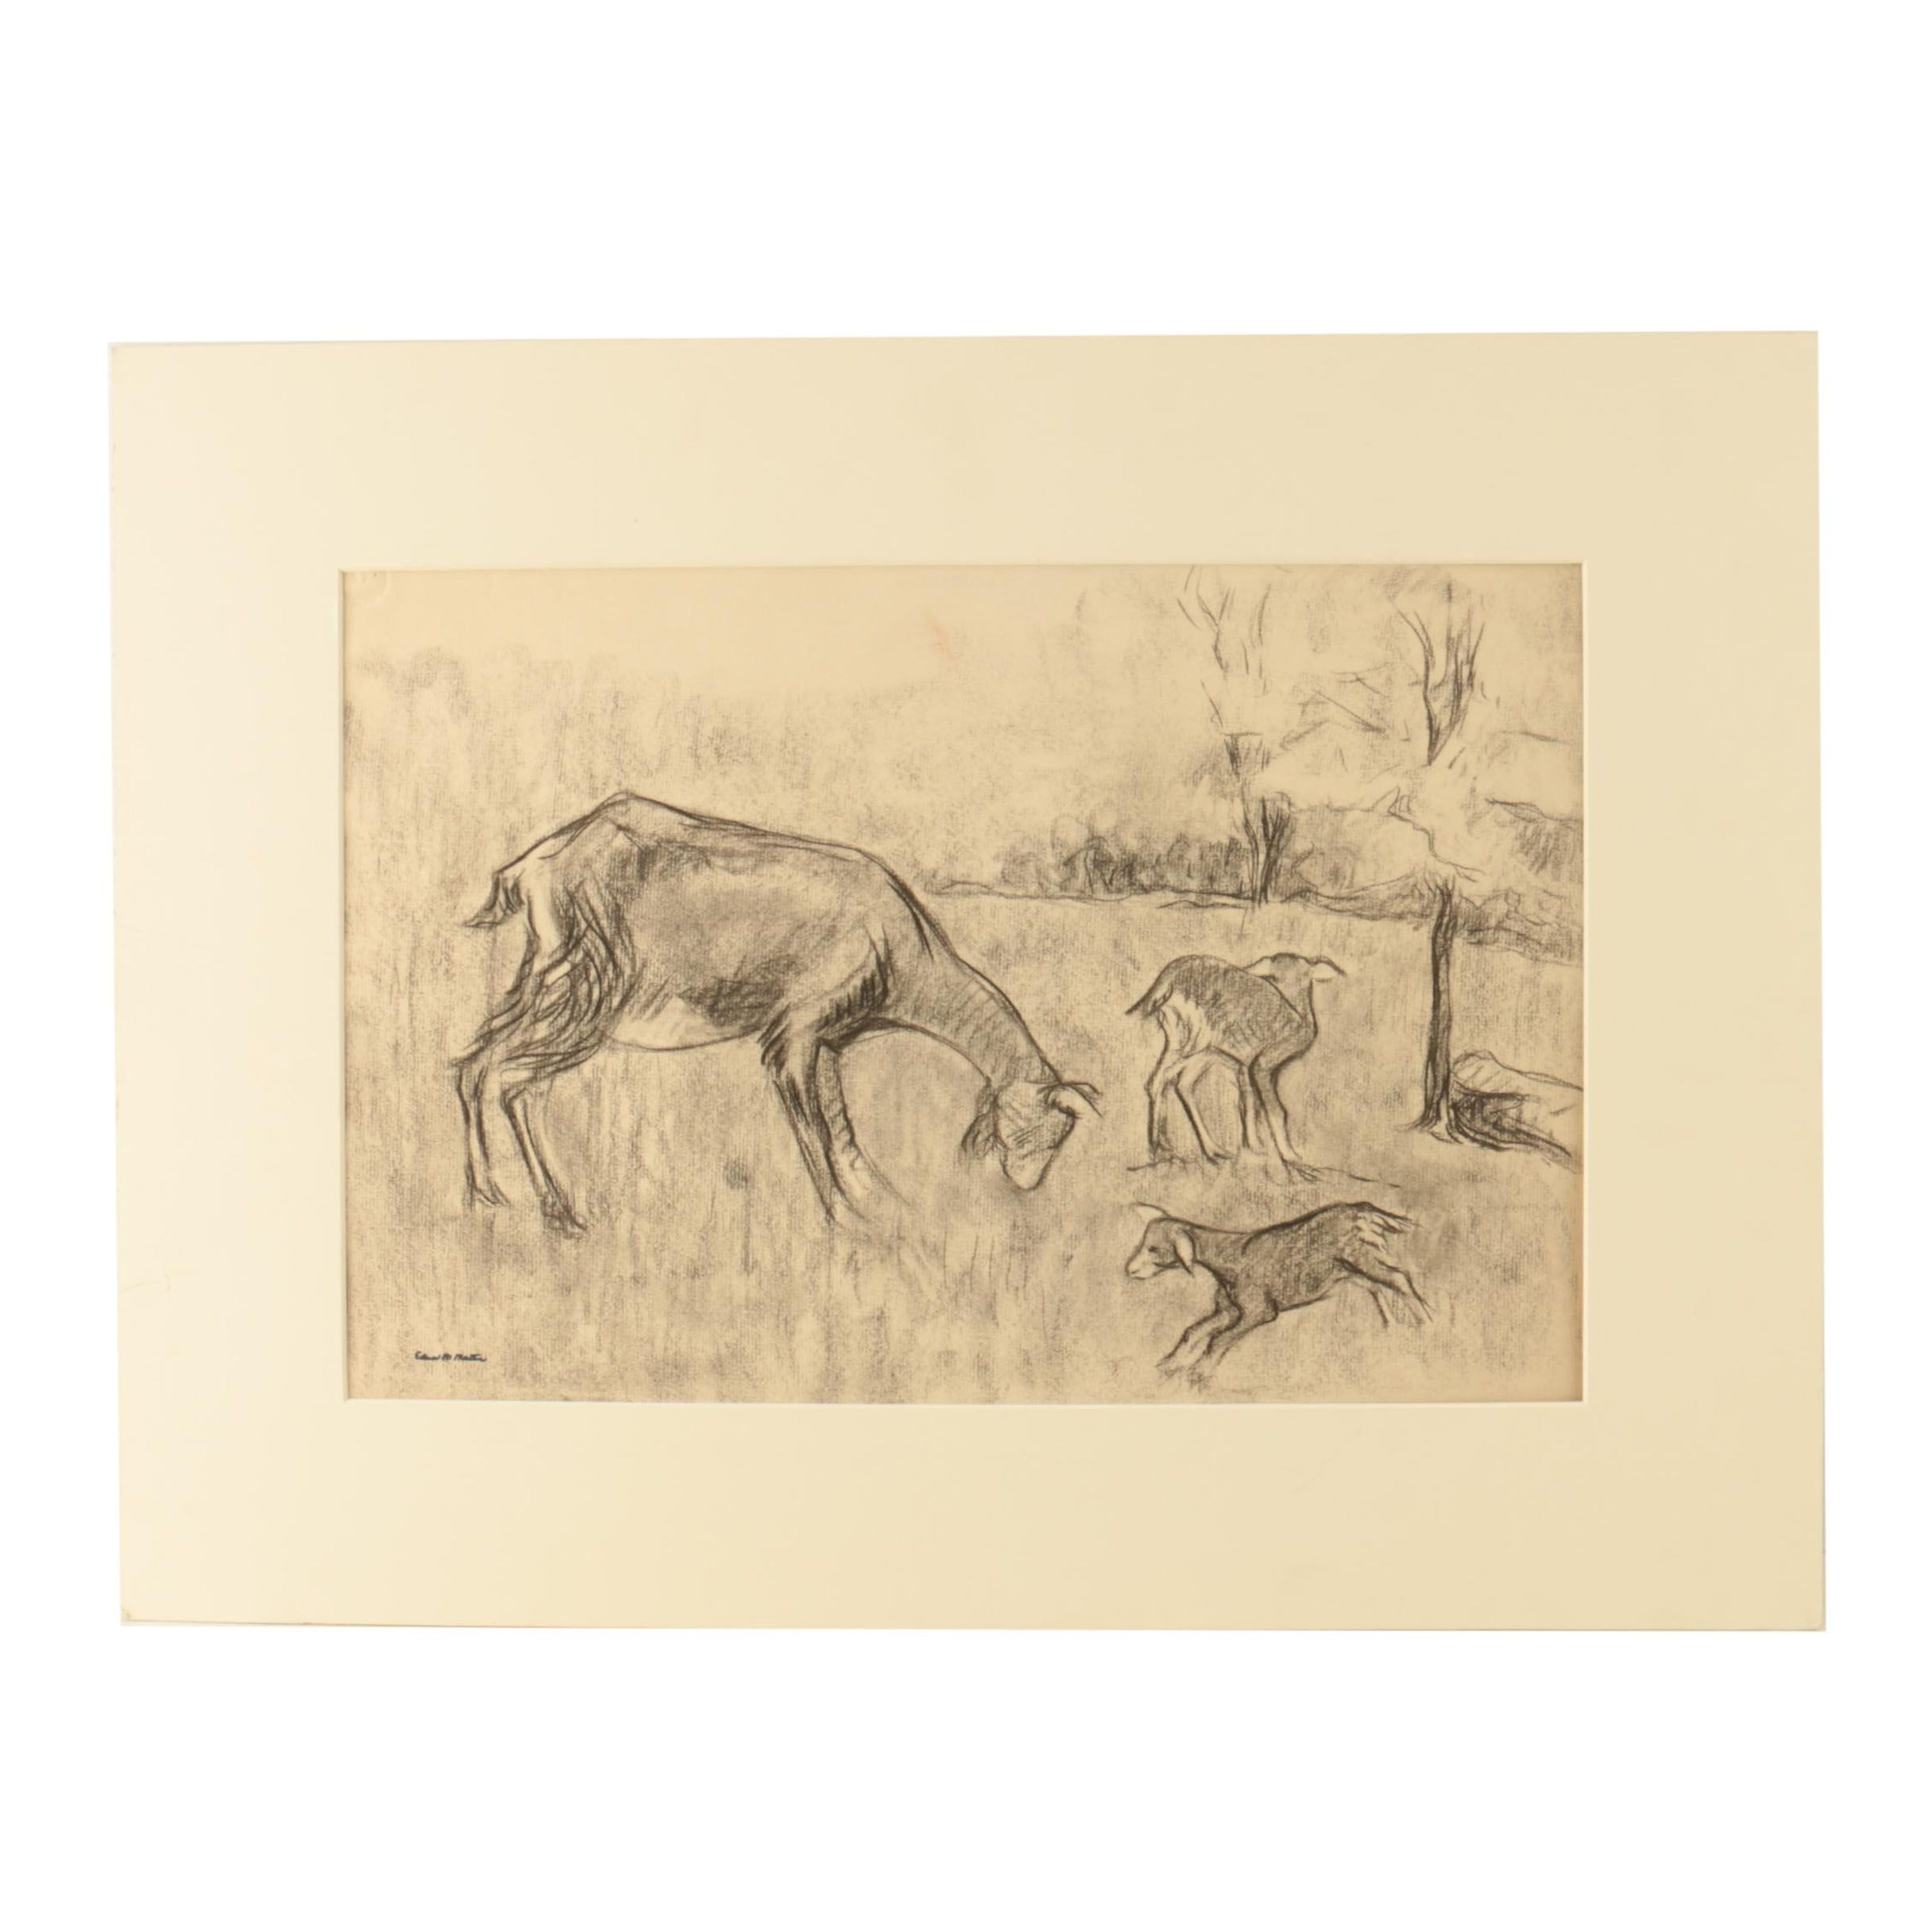 Edna M. Martin Charcoal Drawing of Goats in a Field